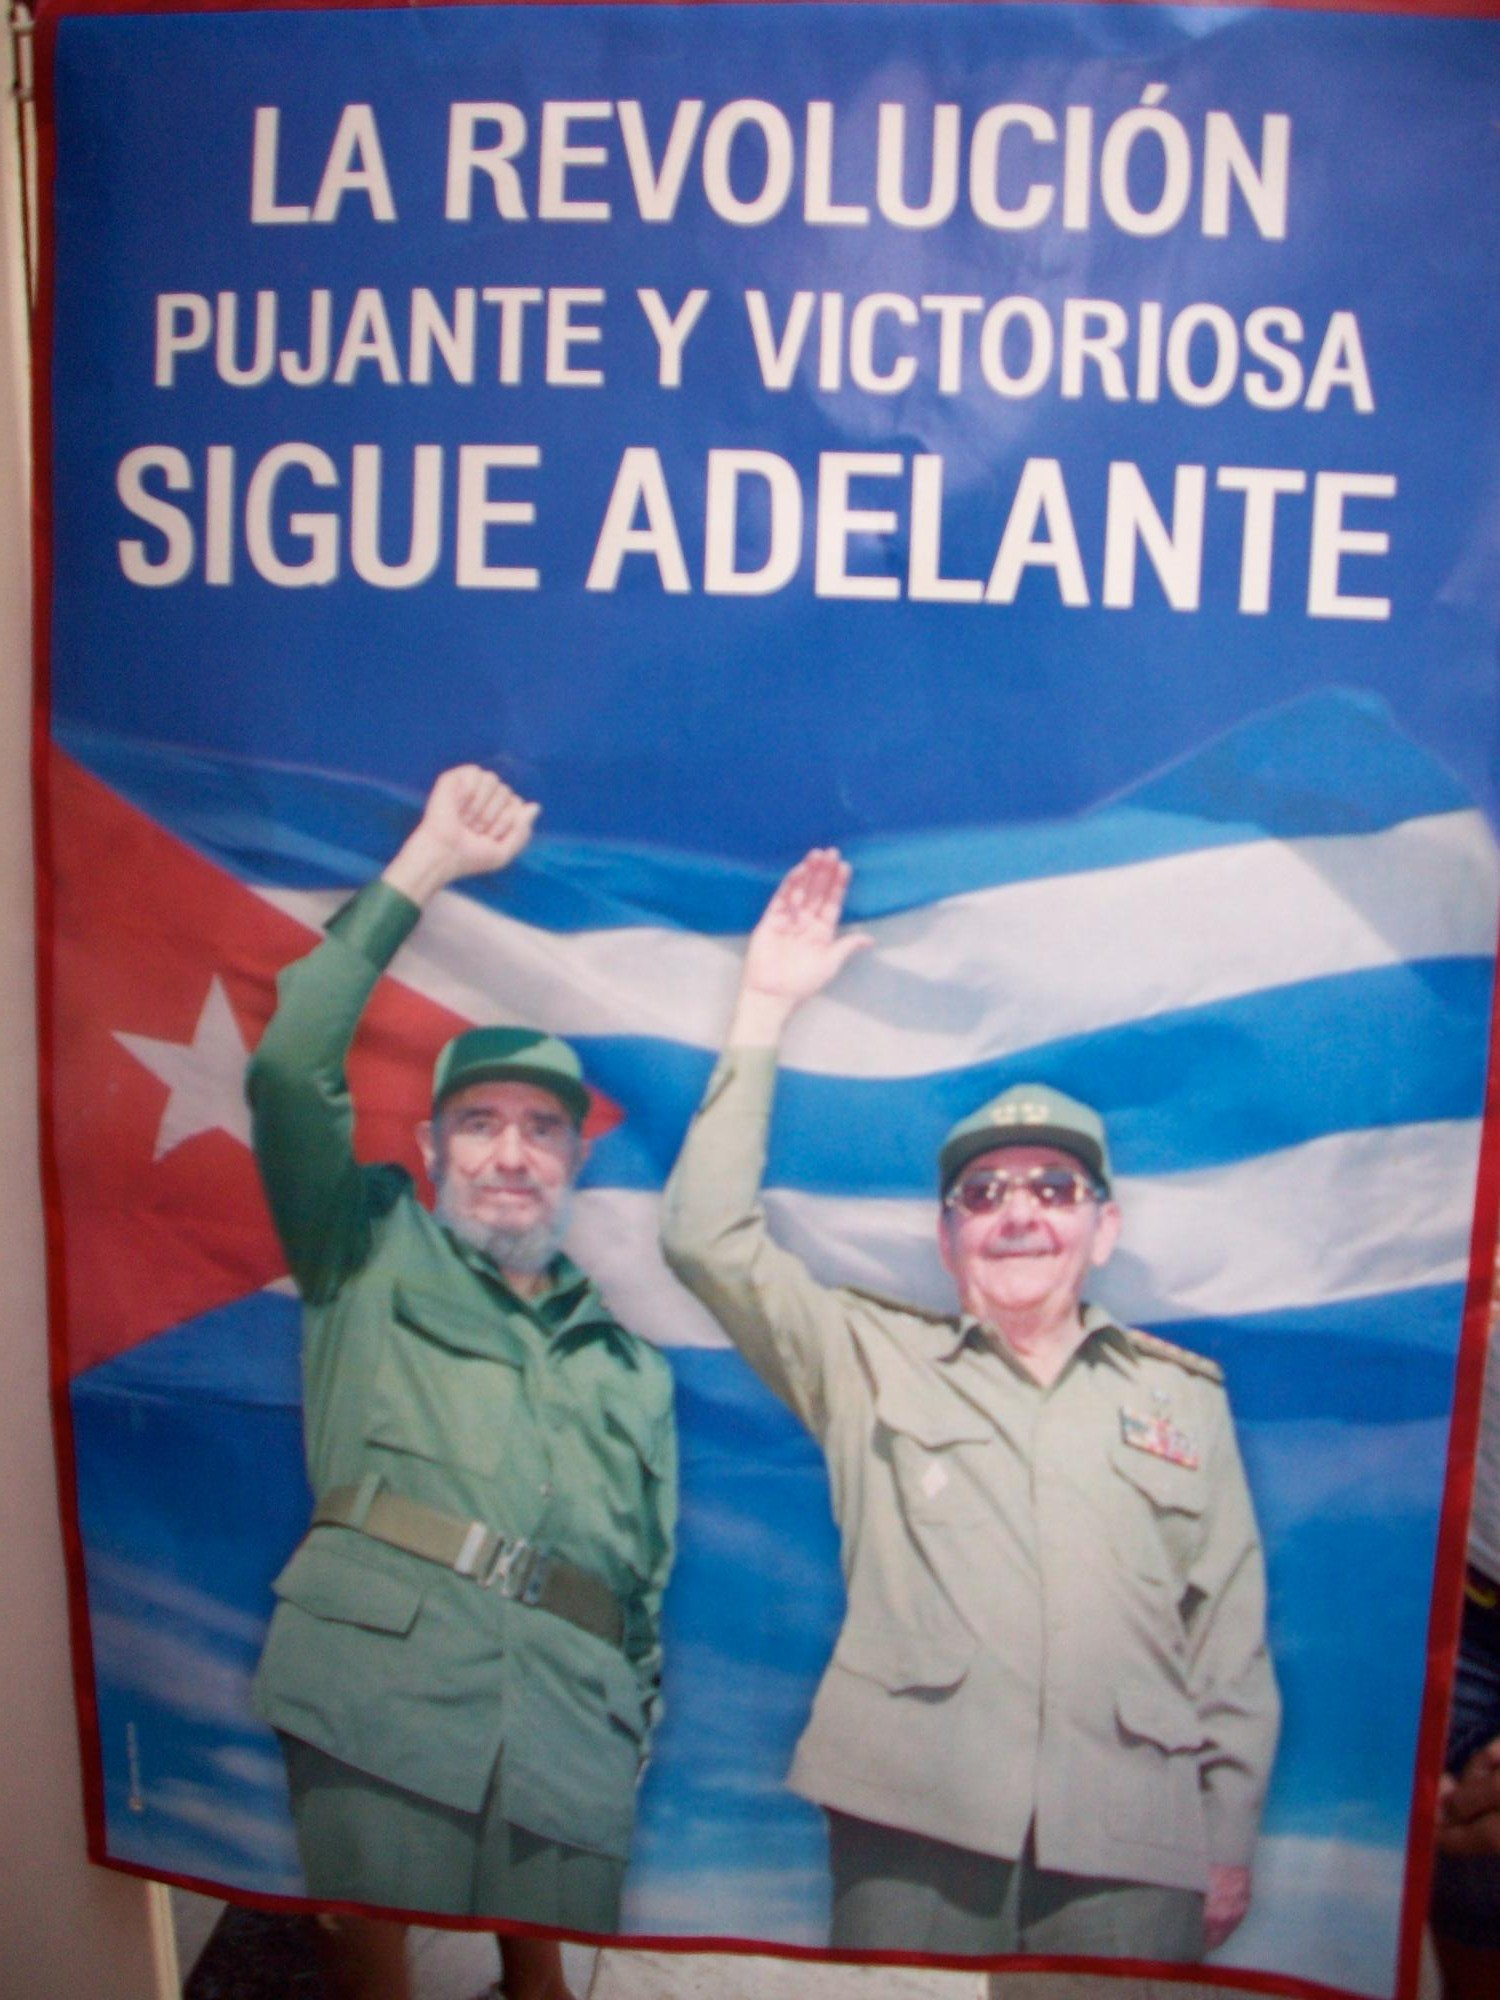 n political slogans photo essay latin america focus every n must know how to shoot and how to shoot well